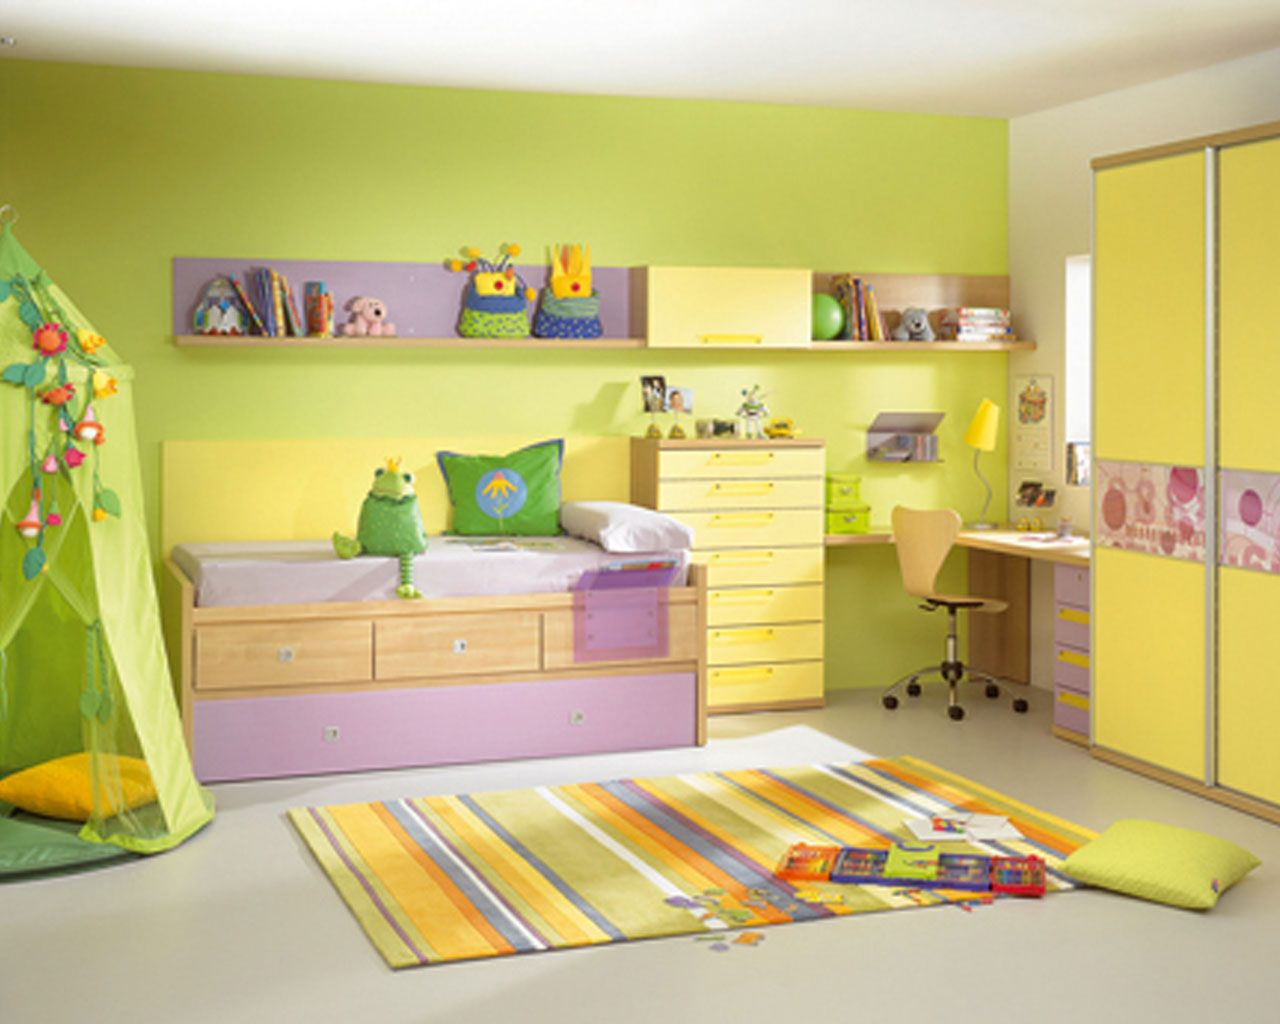 Lime green and white themed kids room paint ideas with simple brown wood bed frame that have Fun bedroom decorating ideas